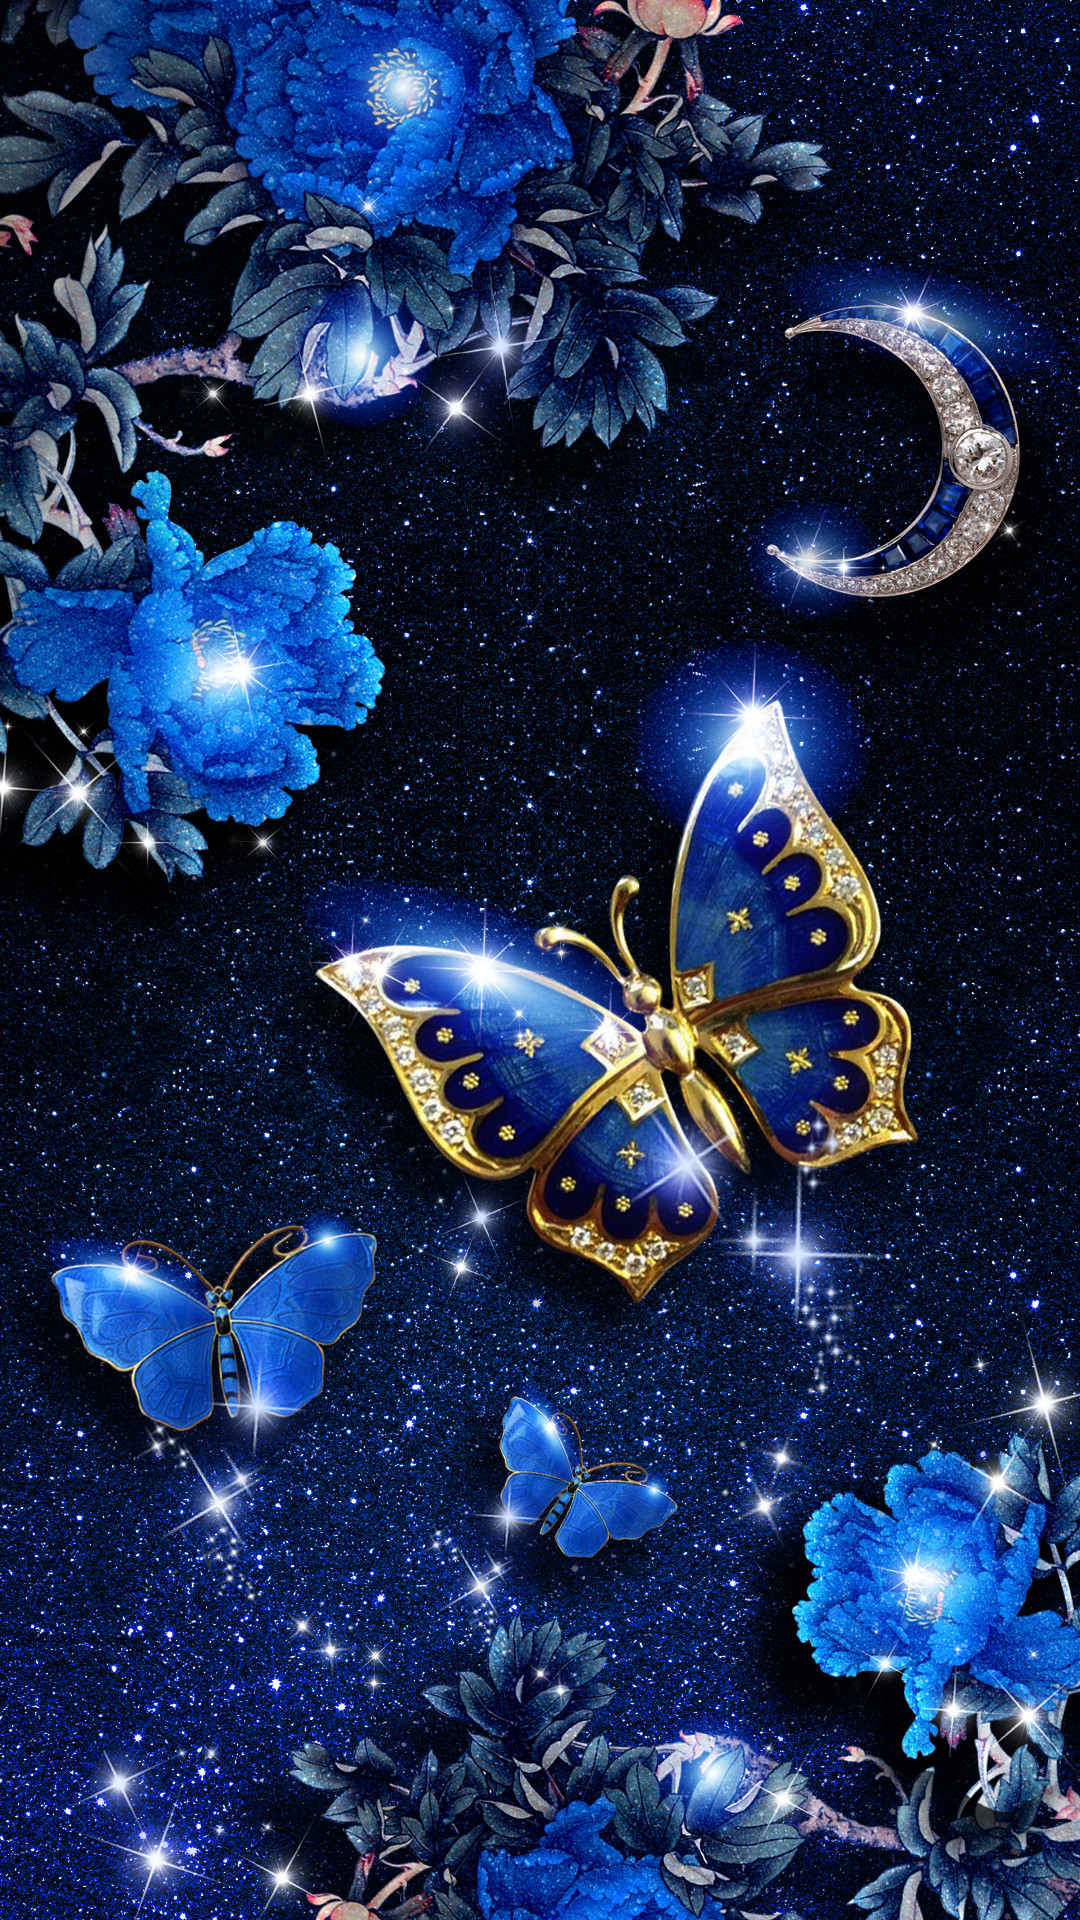 1080x1920  Elegant blue butterfly live wallpaper! Android live wallpaper/background!  It is originally designed